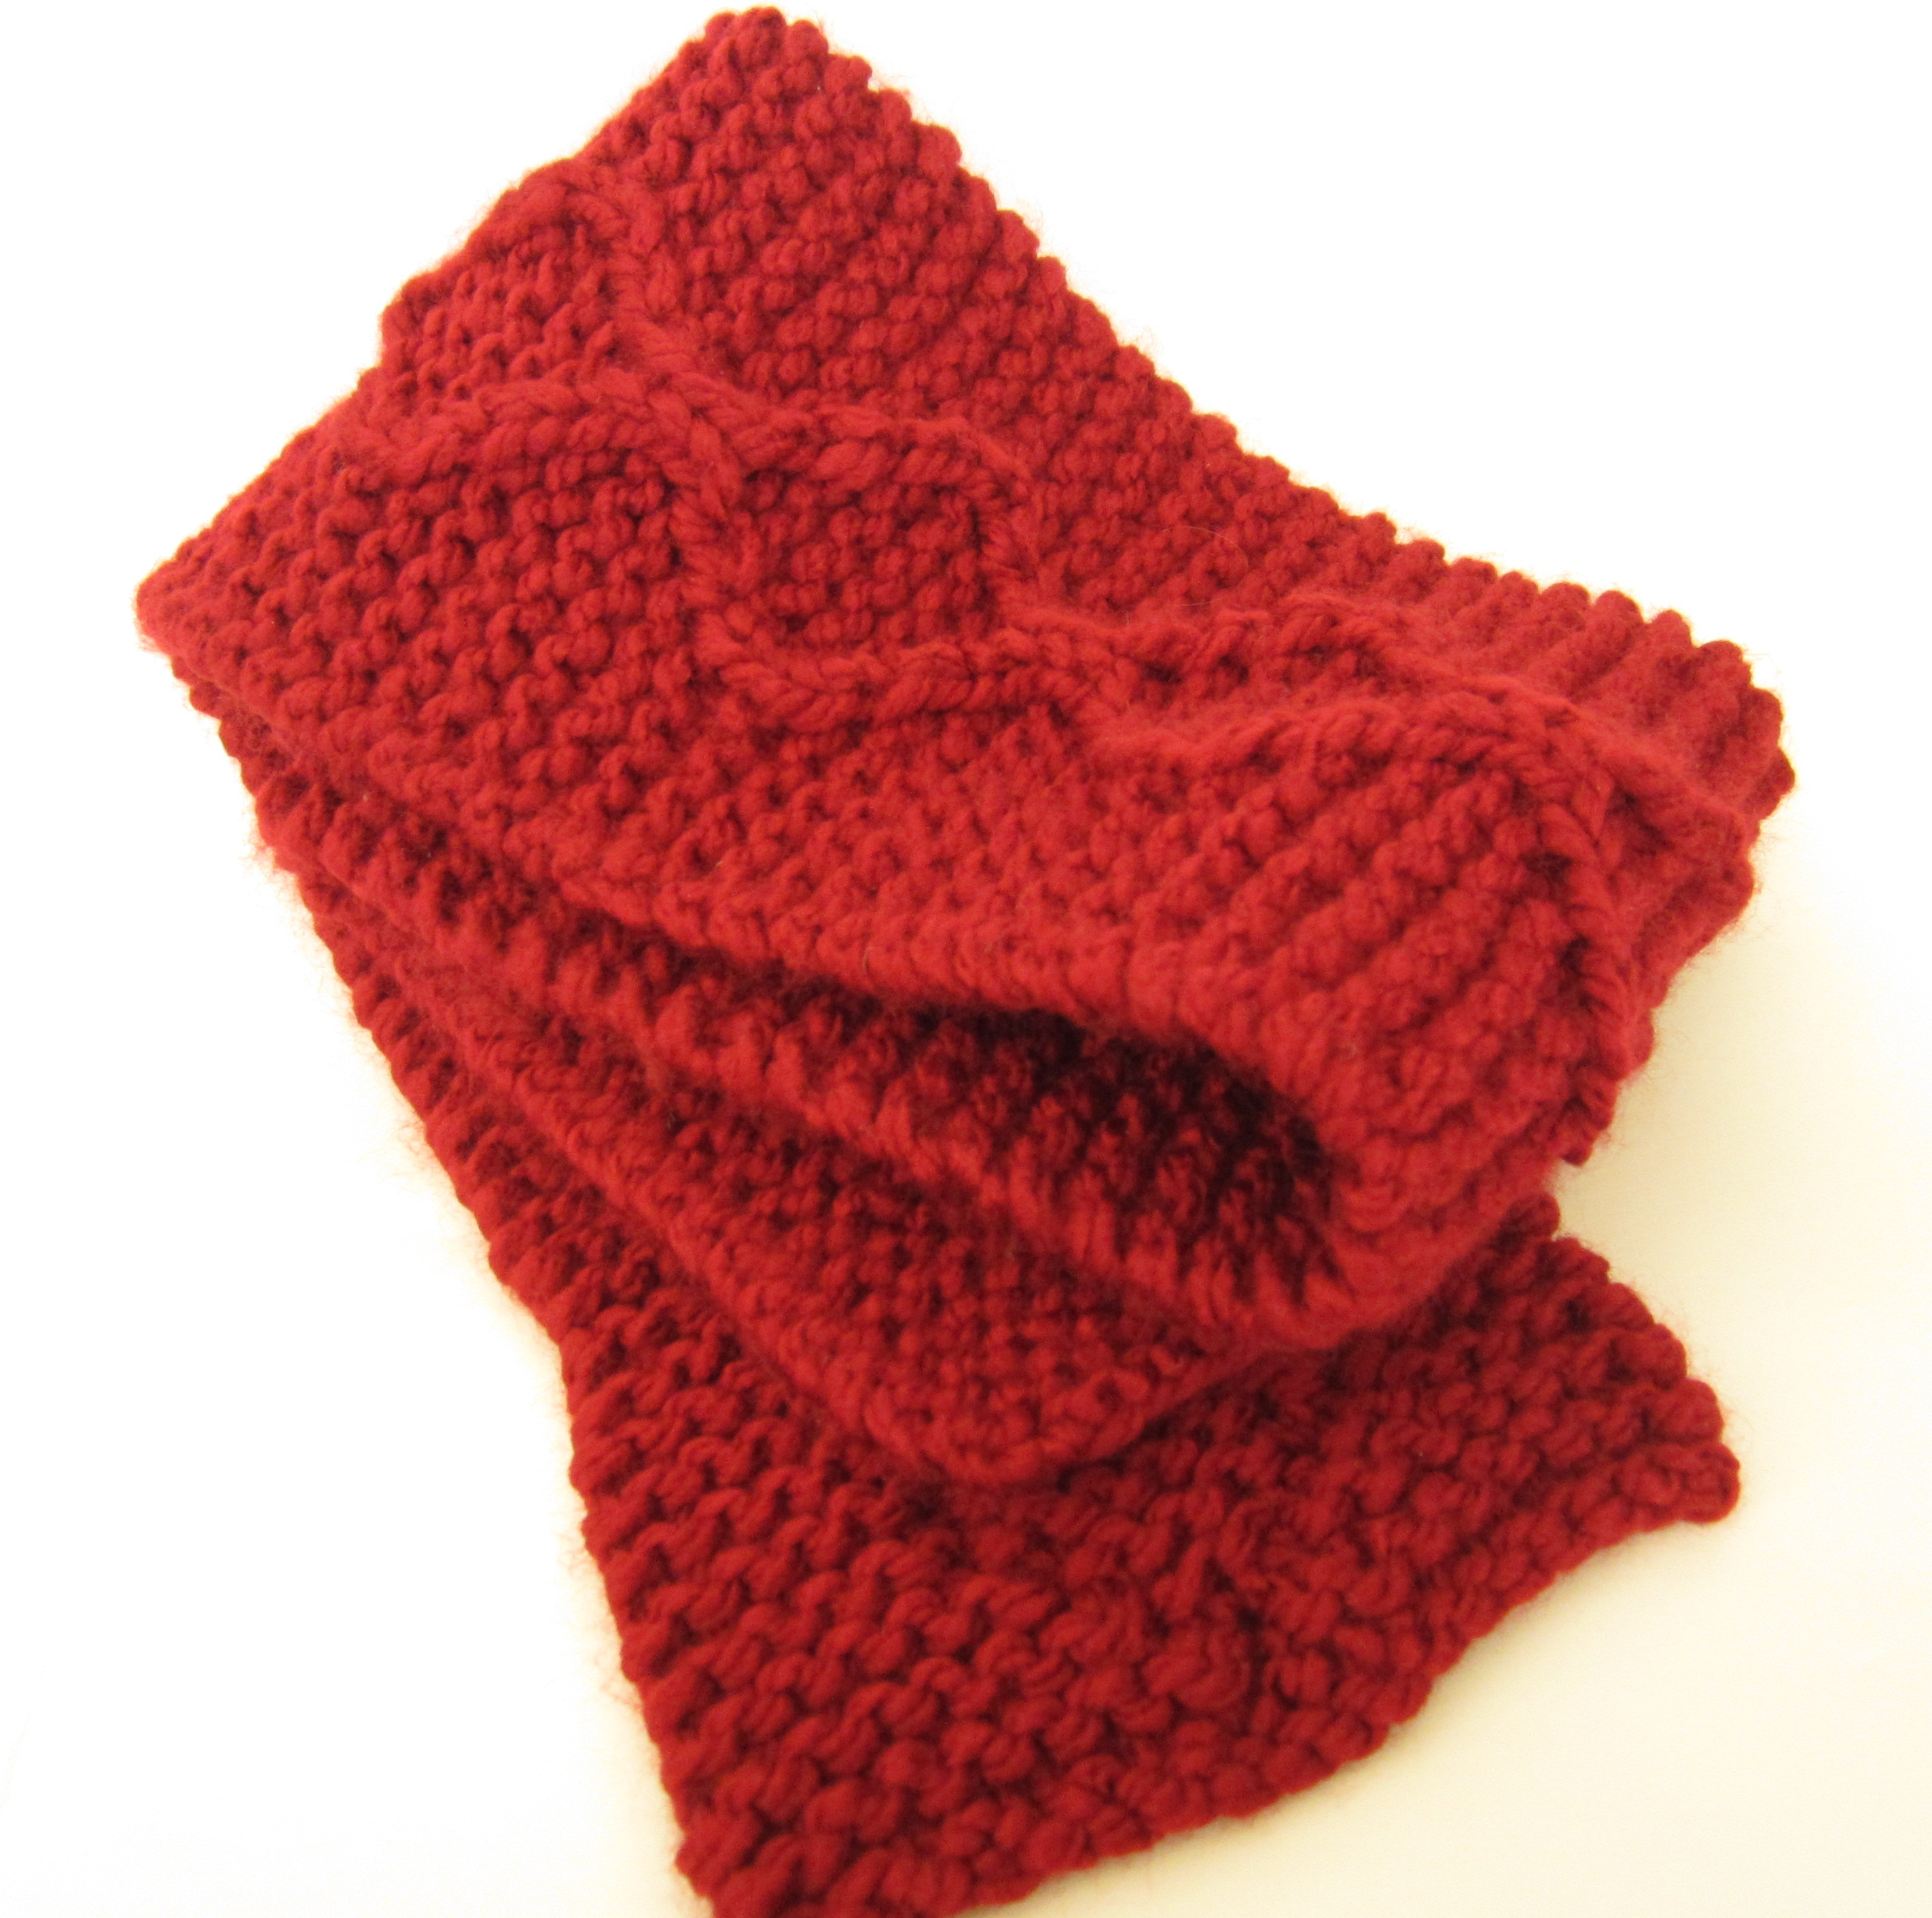 Cable Knit Scarves Patterns : 301 Moved Permanently